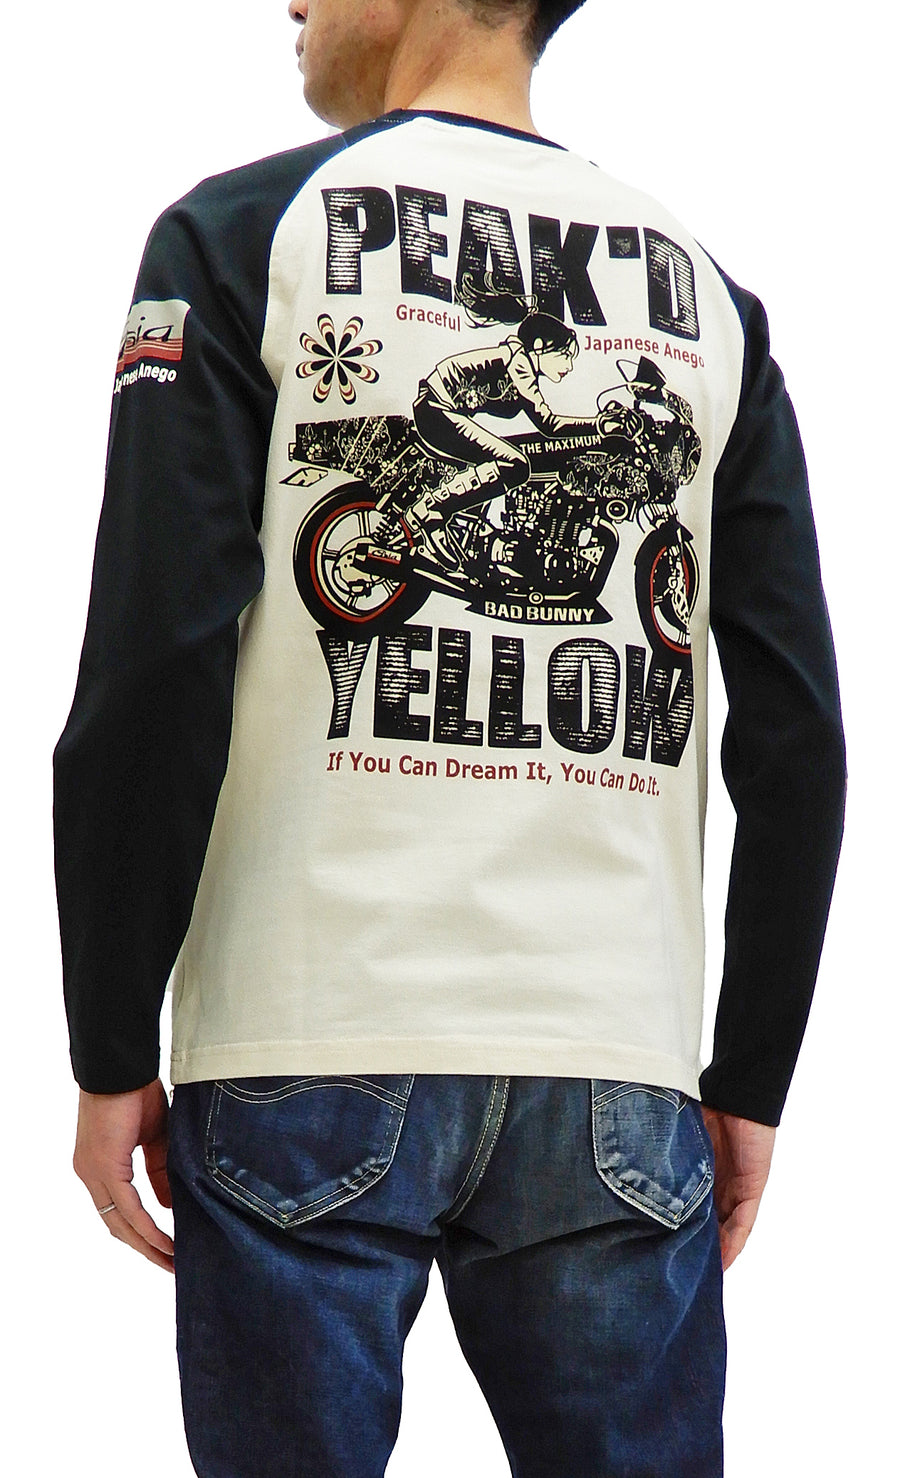 Peaked Yellow T-shirt Men's Japanese Woman Motorcycle Long Sleeve Tee PYLT-223 Off/Black